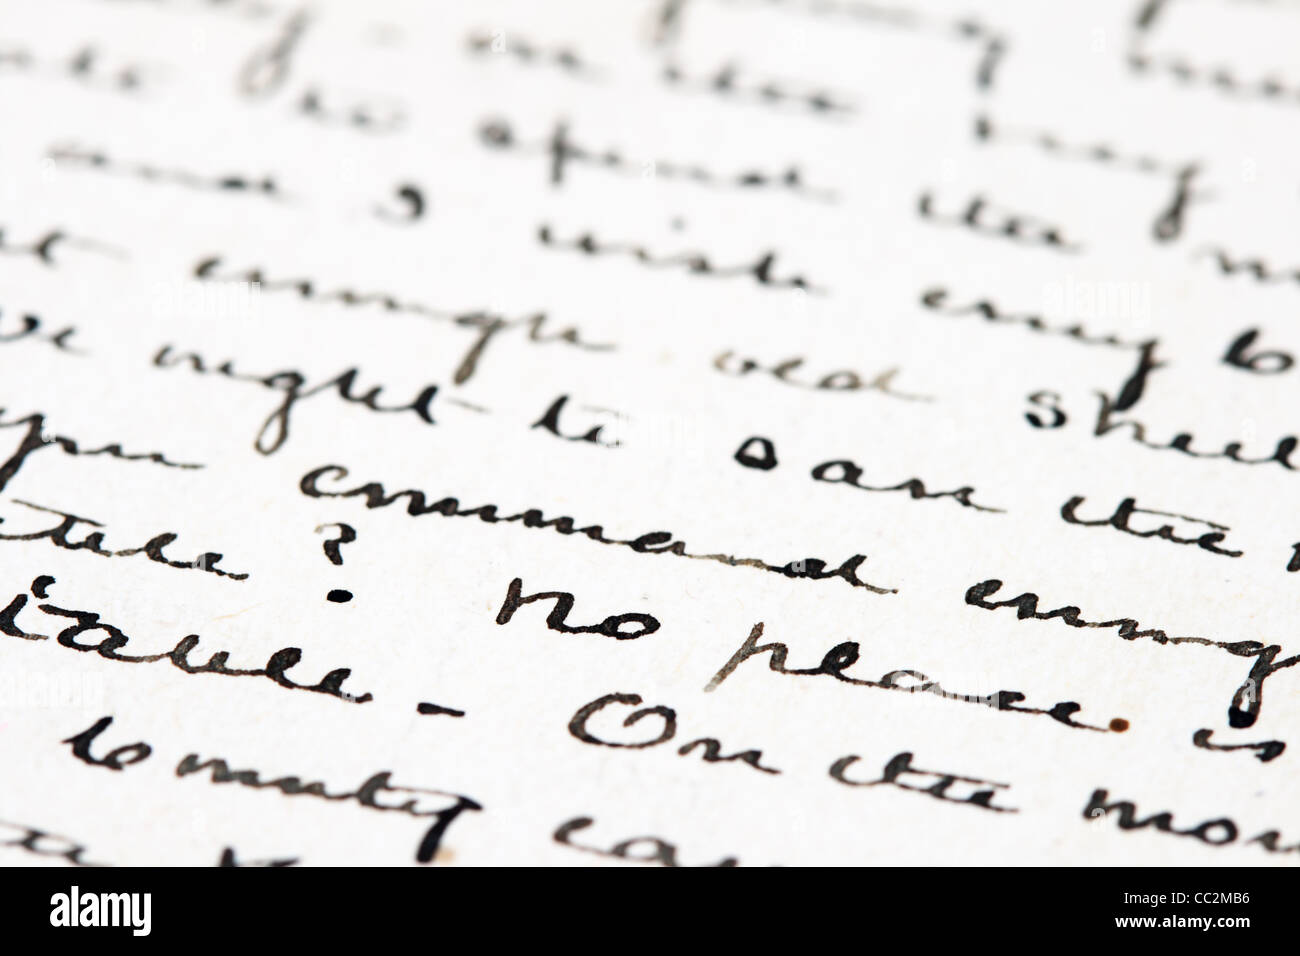 selective focus detail from an old pen and ink letter with cursive writing - Stock Image